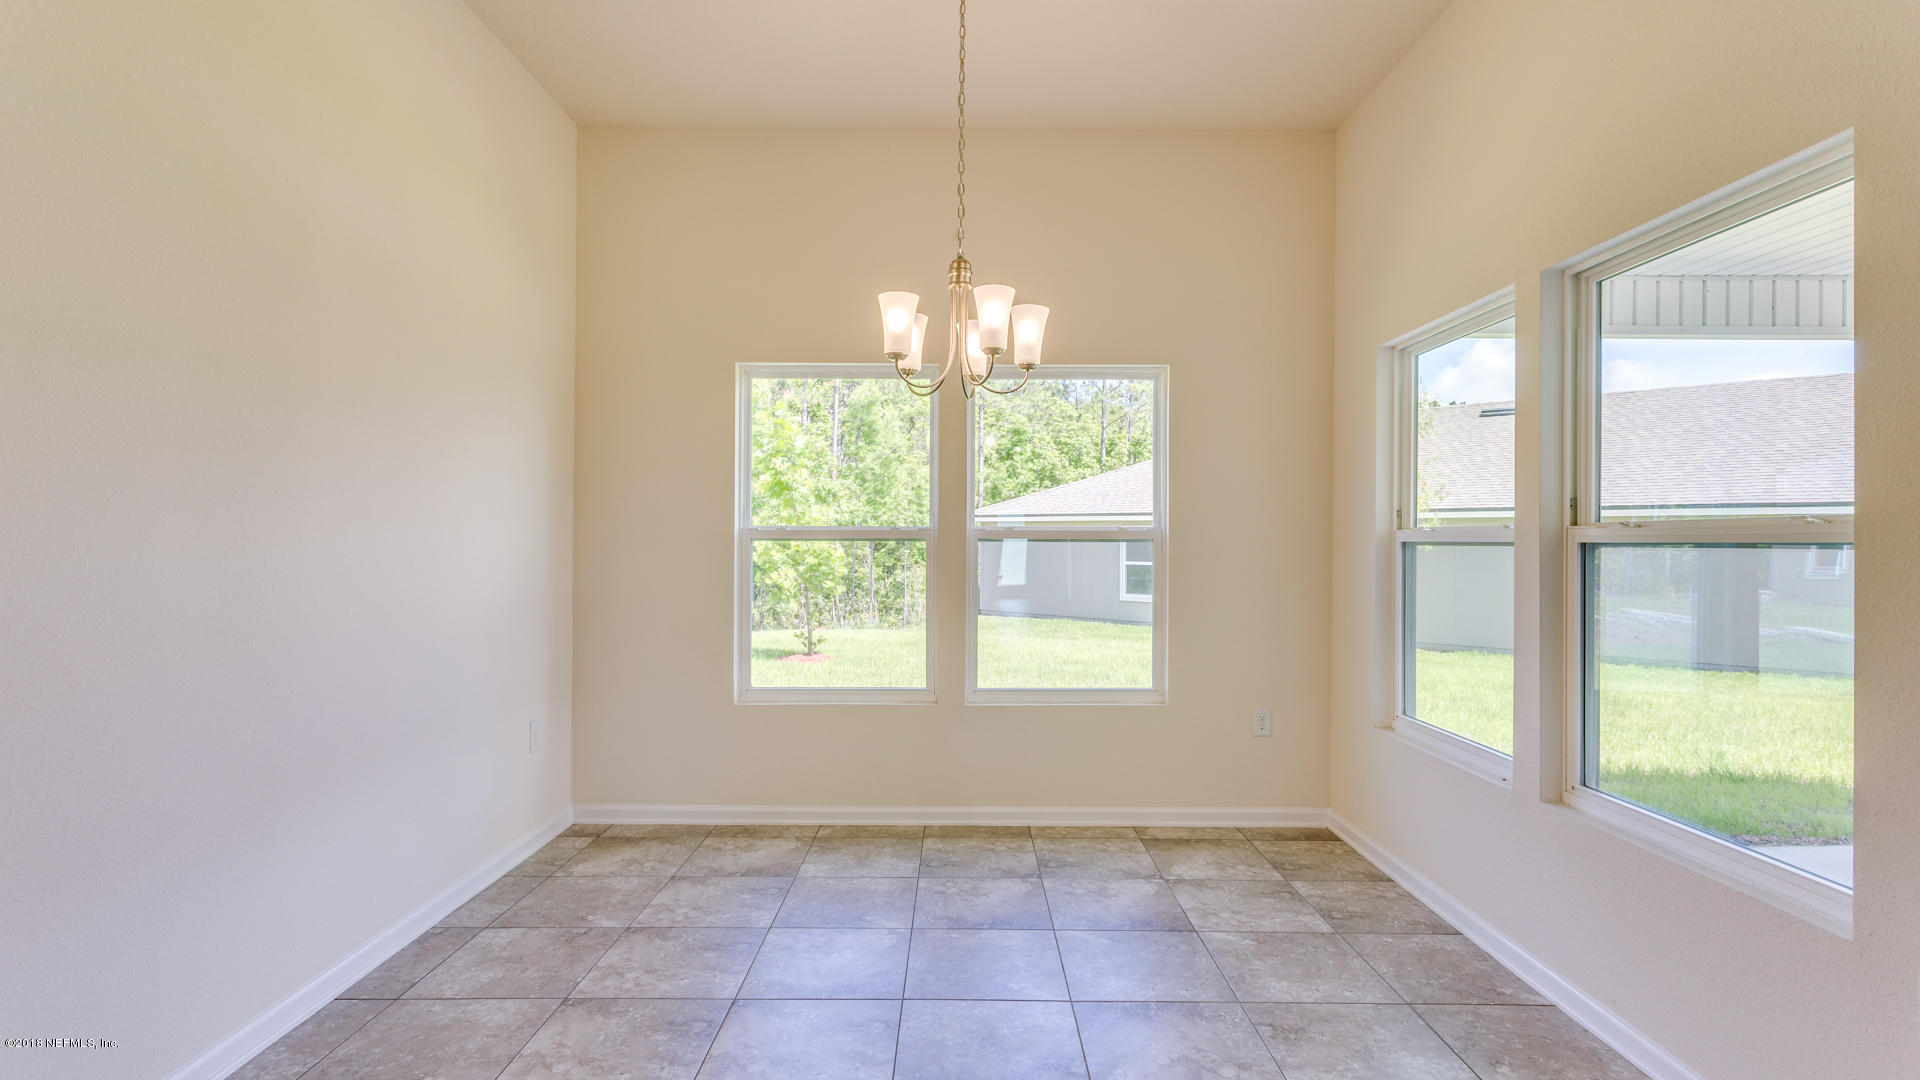 20 TESLA, ST AUGUSTINE, FLORIDA 32084, 3 Bedrooms Bedrooms, ,2 BathroomsBathrooms,Residential - single family,For sale,TESLA,900702